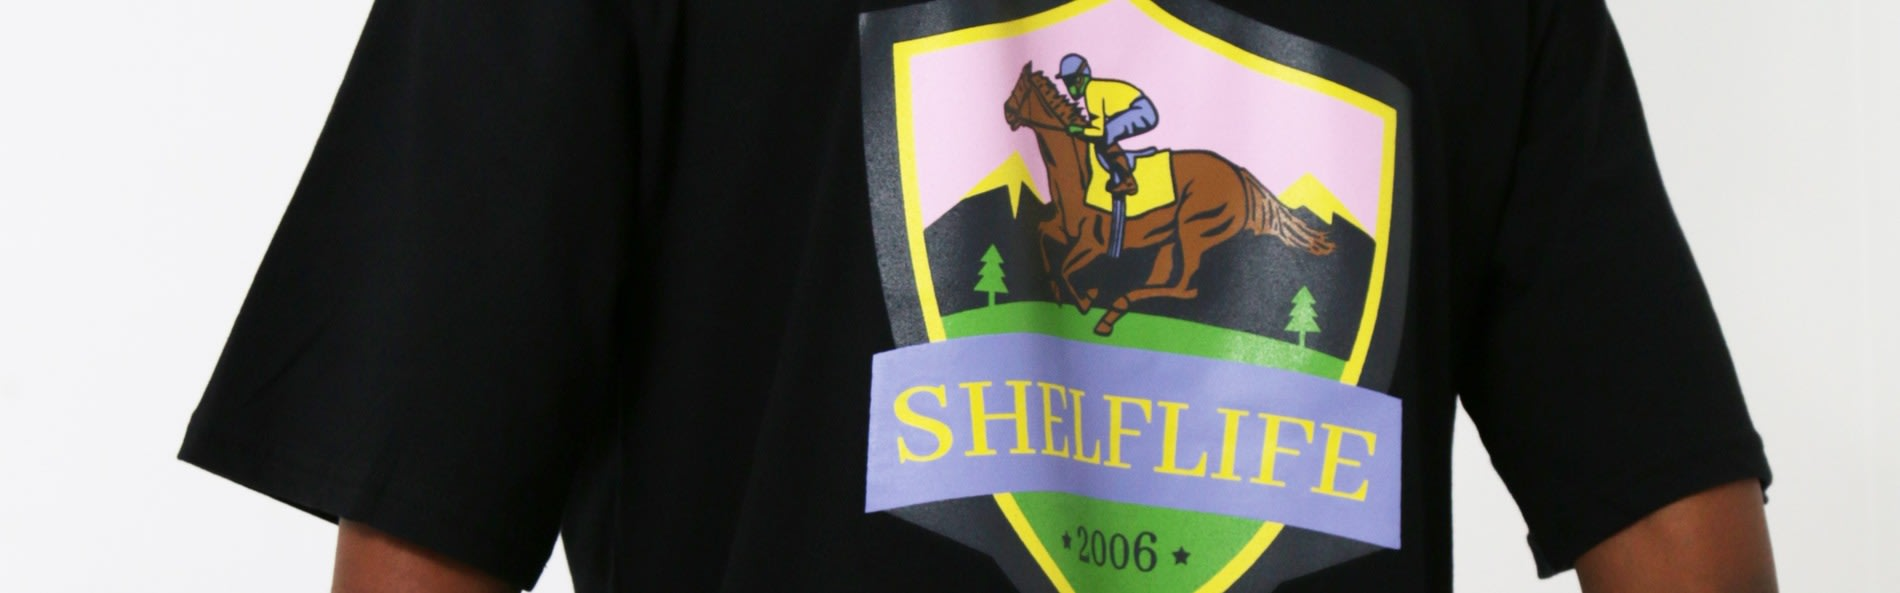 Shelflife 'Day at the Races' Pack